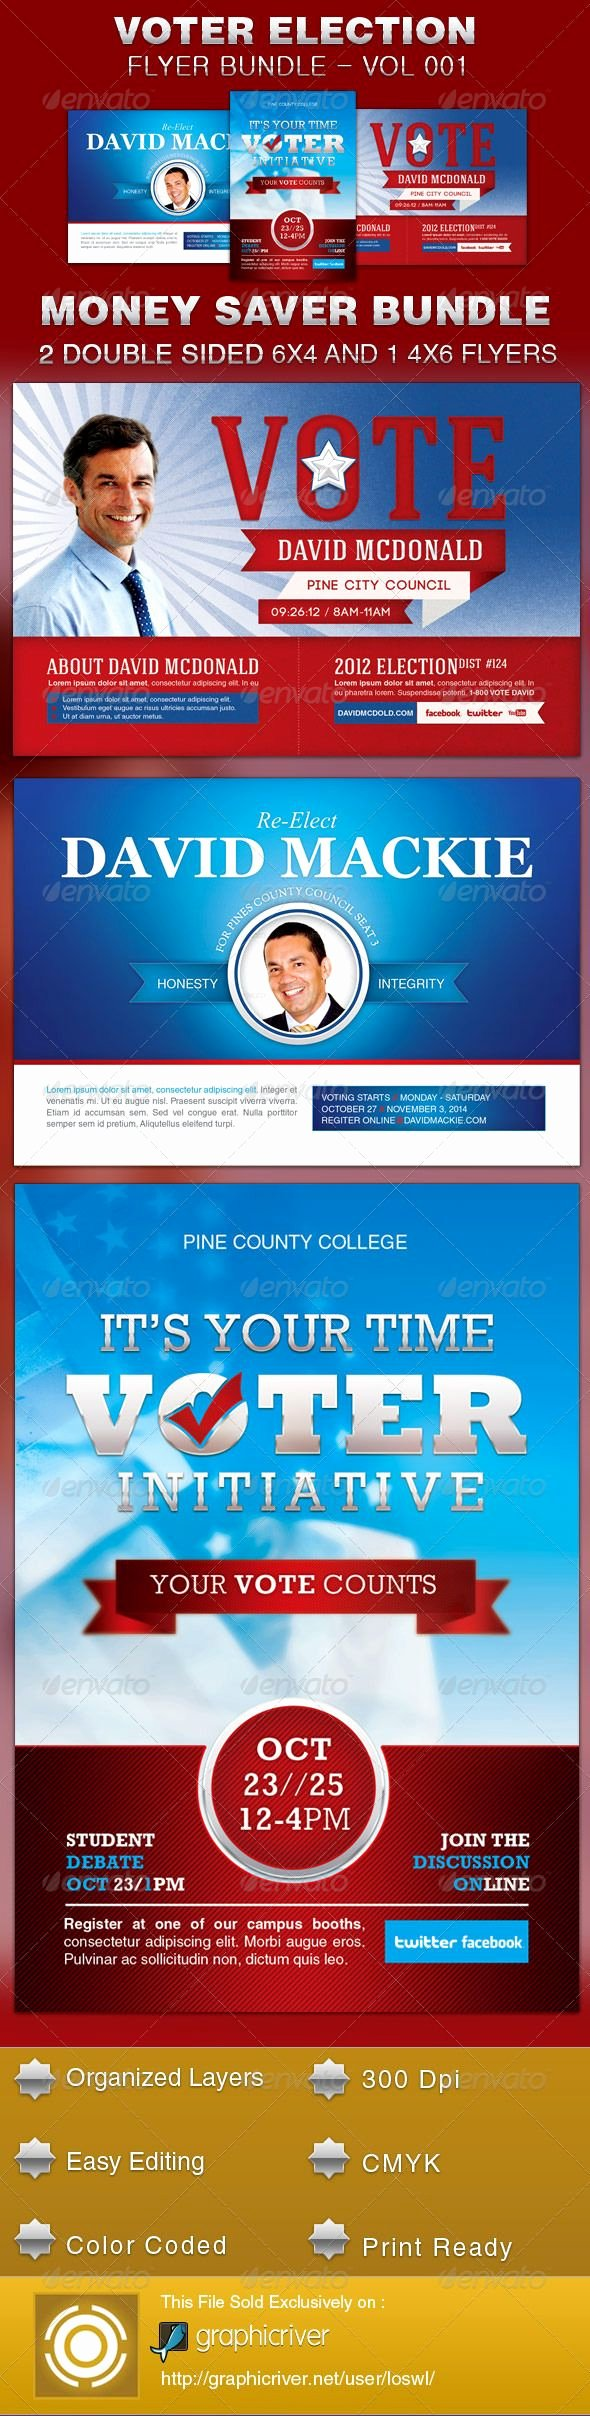 Student Council Poster Template Best Of 40 Best Images About Campaign Ideas On Pinterest